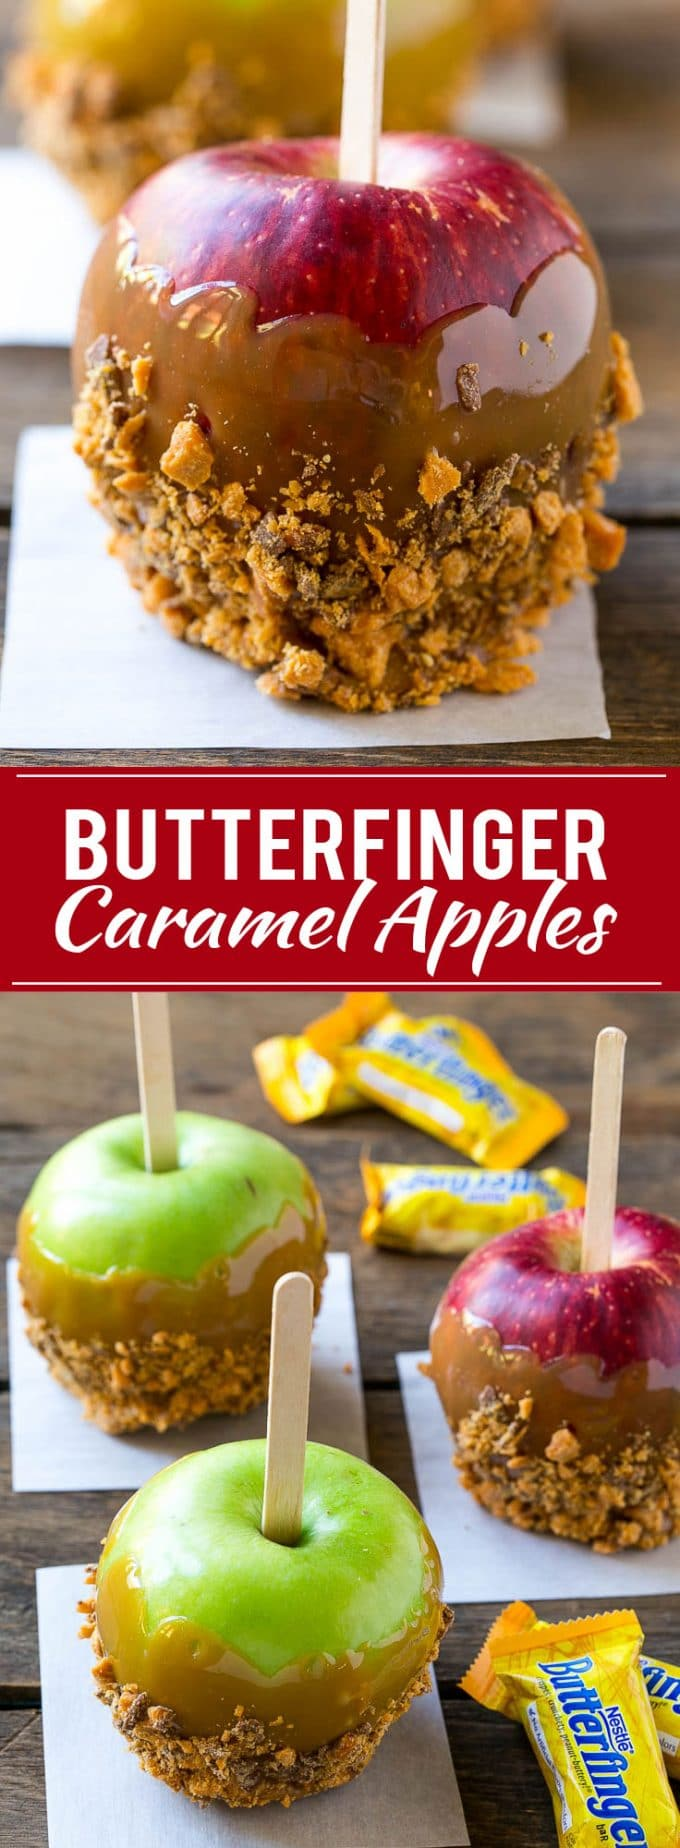 halloween time is almost here and ive got some fun and easy ways to celebrate from 3 ingredient butterfinger caramel apples to spooky bat decorations - Caramel Apple Ideas Halloween